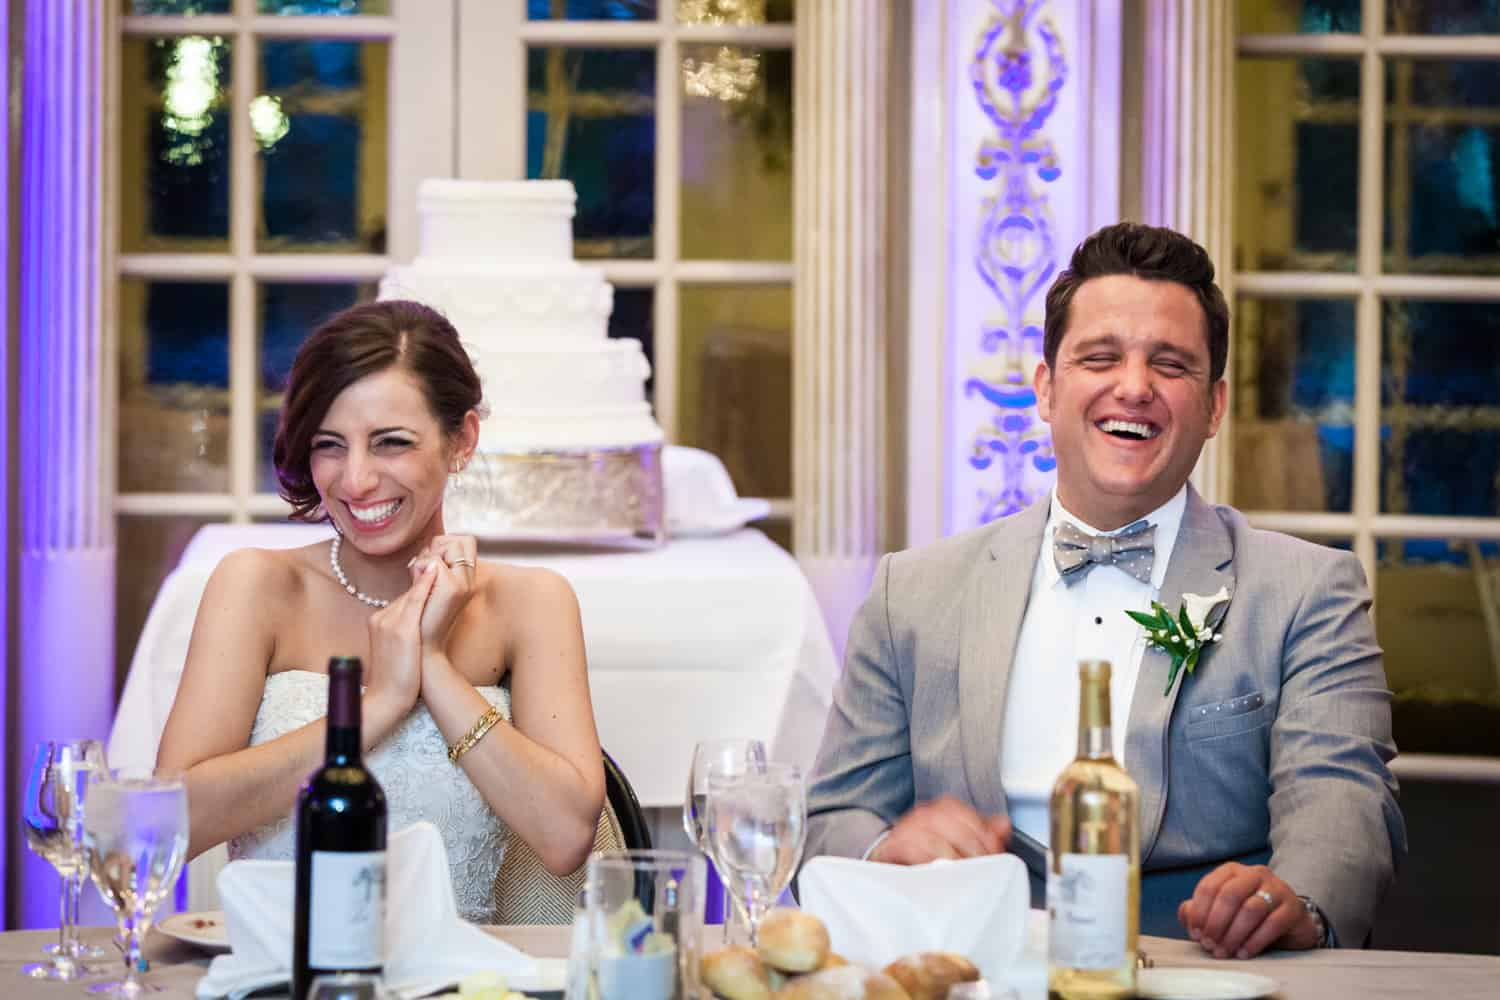 Bride and groom at sweetheart table laughing during speeches